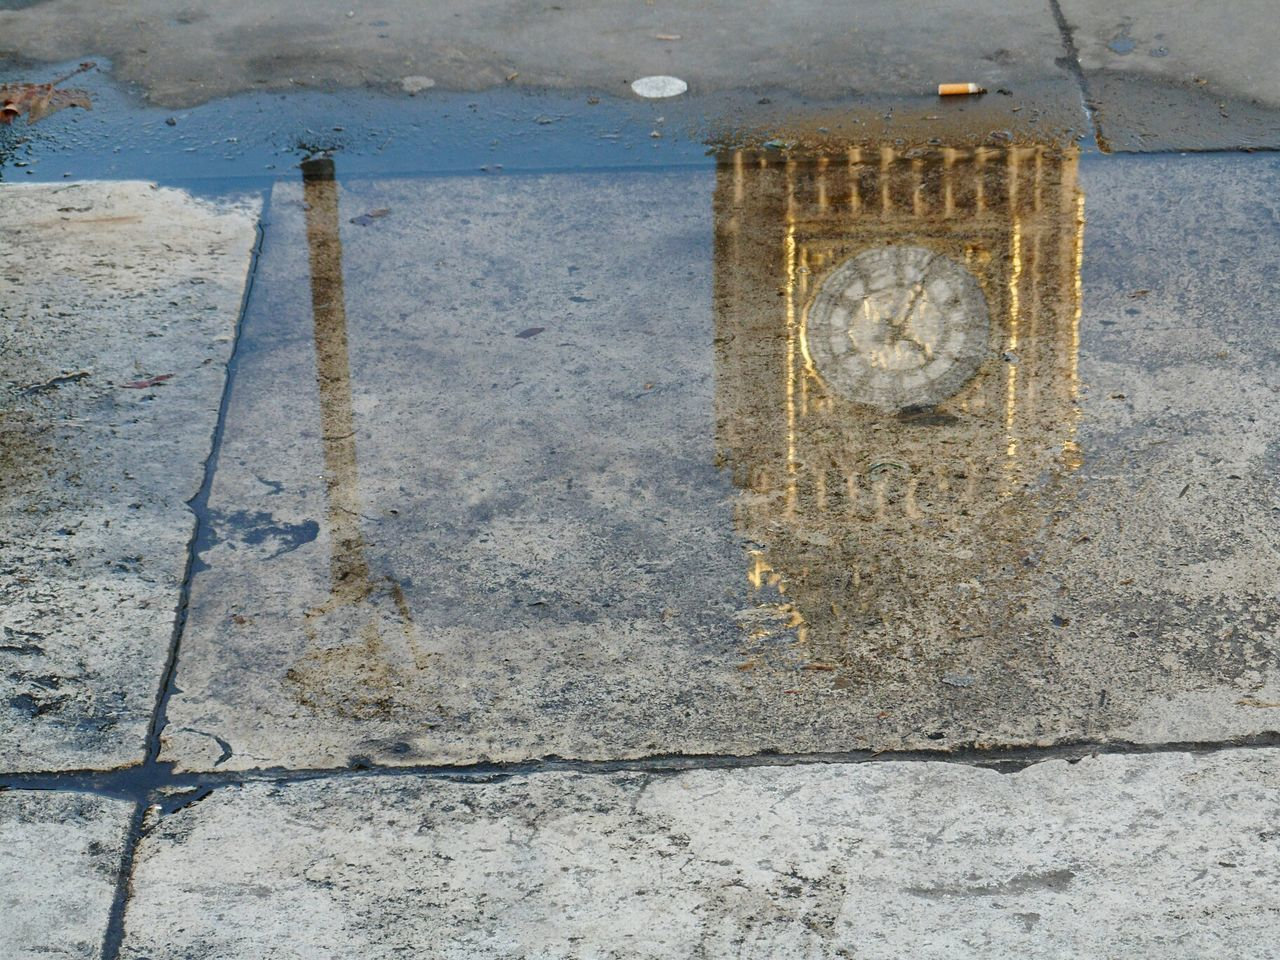 High angle view of big ben reflecting on puddle in city